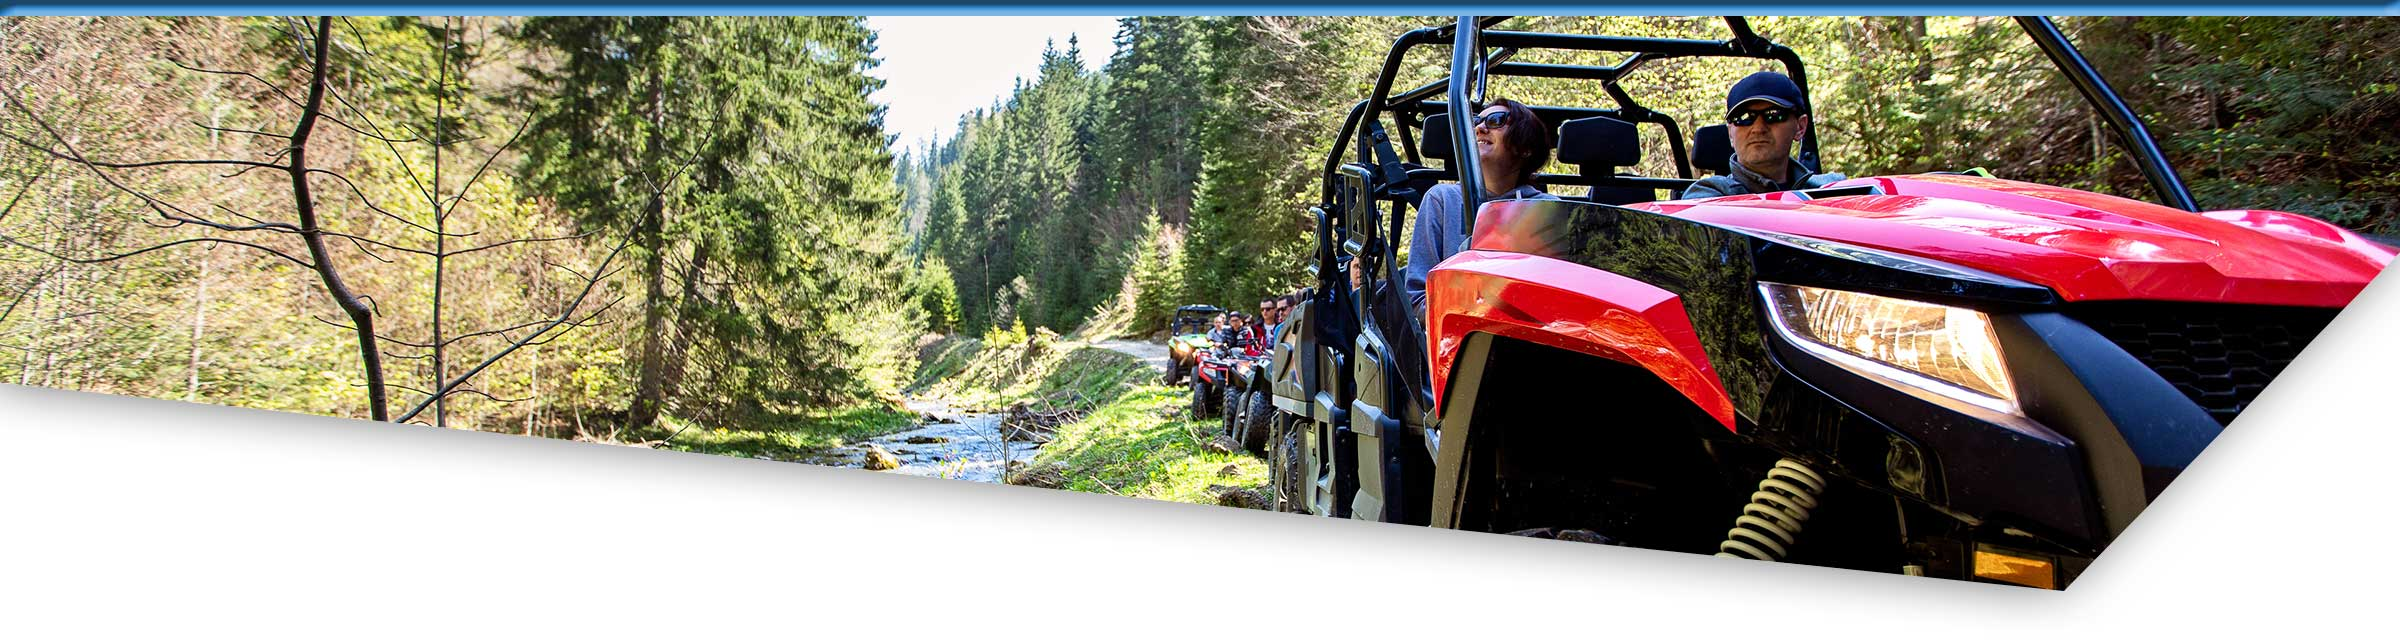 Driving ATVs along the river